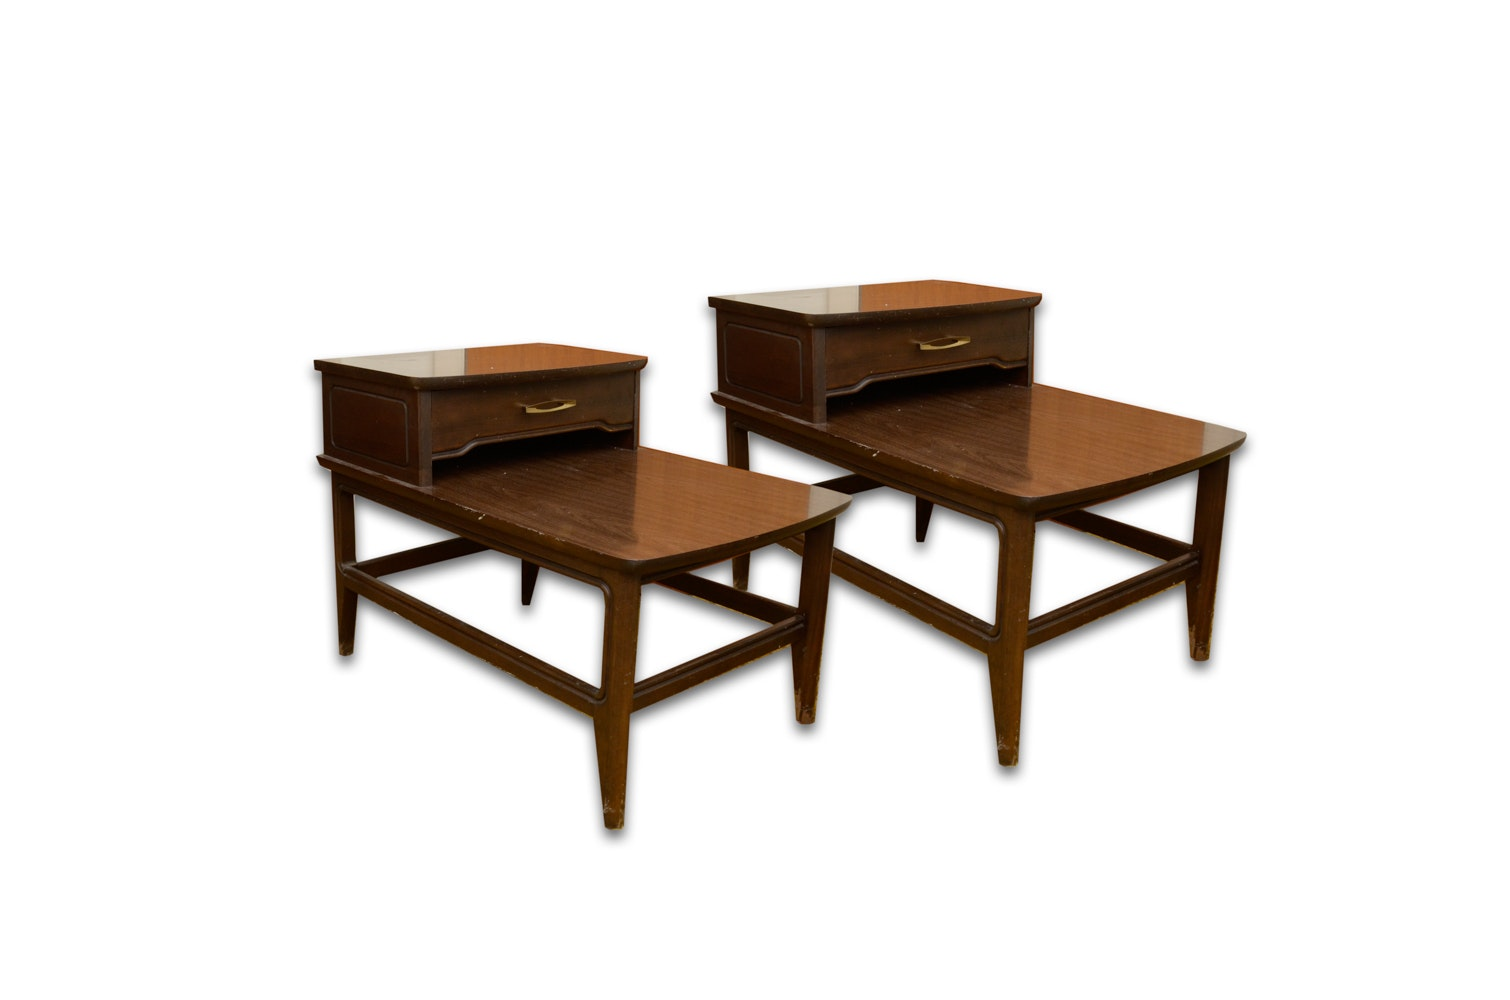 Vintage Mid-Century Mahogany Step Side Tables by Mersman